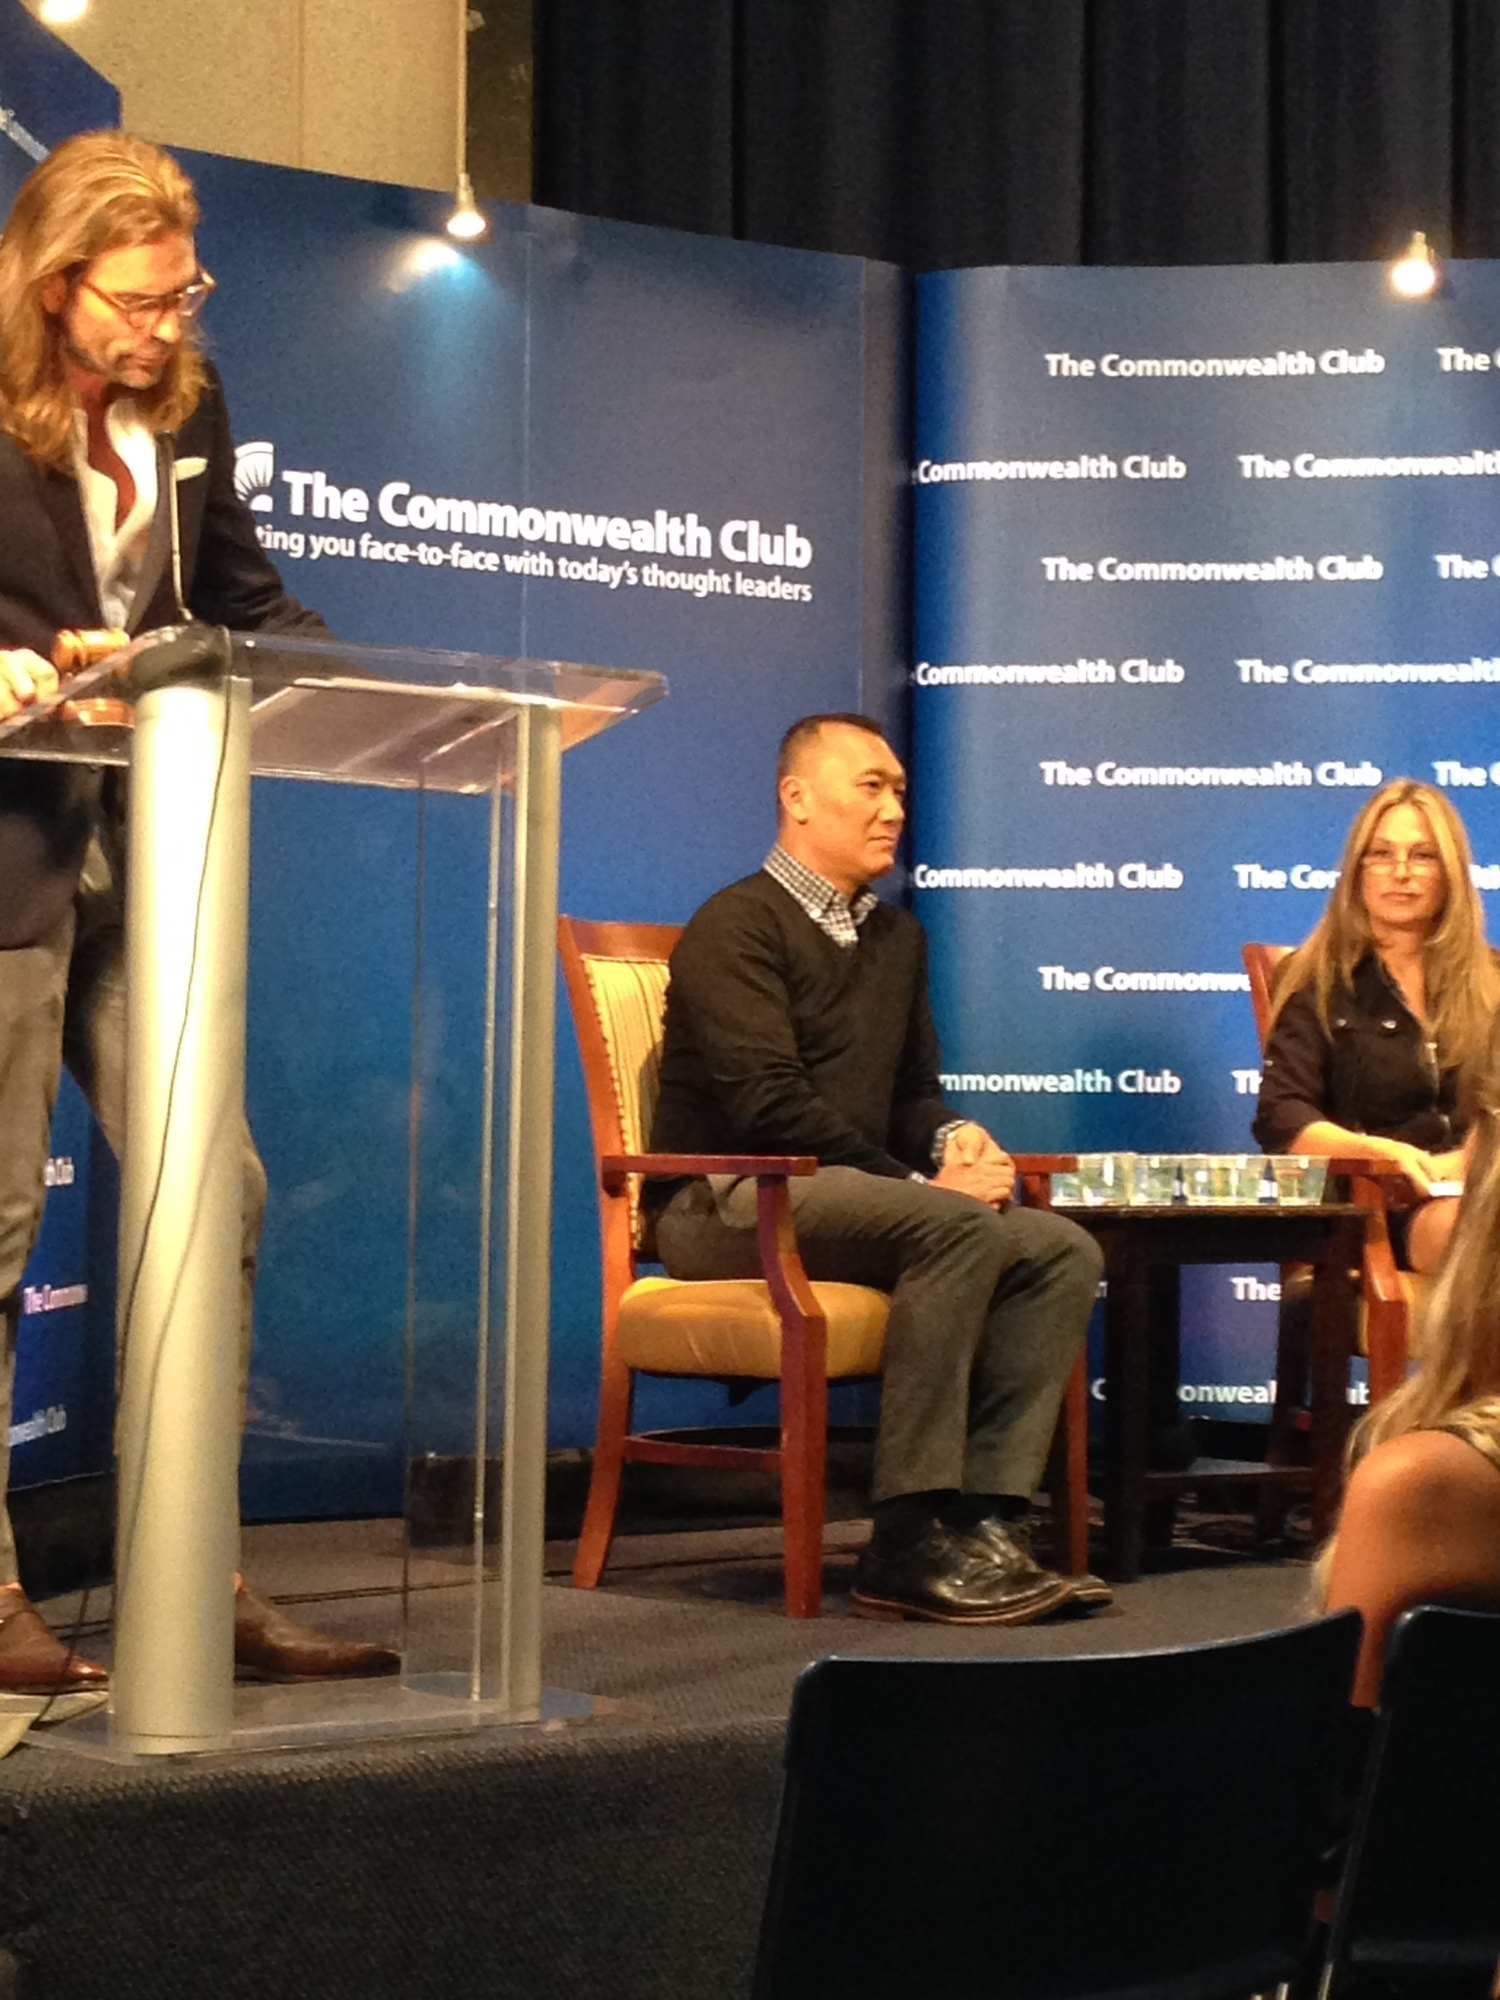 Joe Zee, seated, was interviewed by Carolyne Zinko of the San Francisco Chronicle at The Commonwealth Club on Monday Sept 22, 2014.